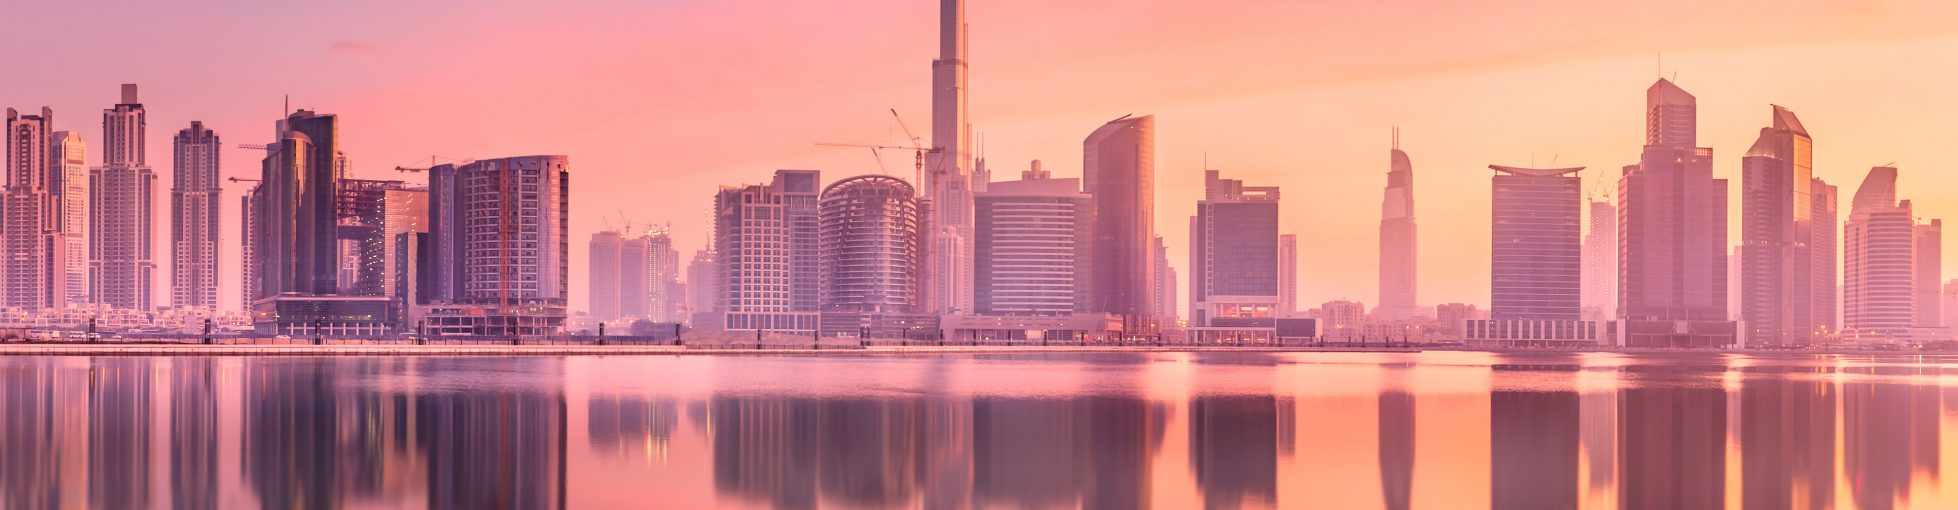 Cityscape of Dubai and panoramic view of Business bay with reflection of skyscrapers on water during purple sunrise, UAE